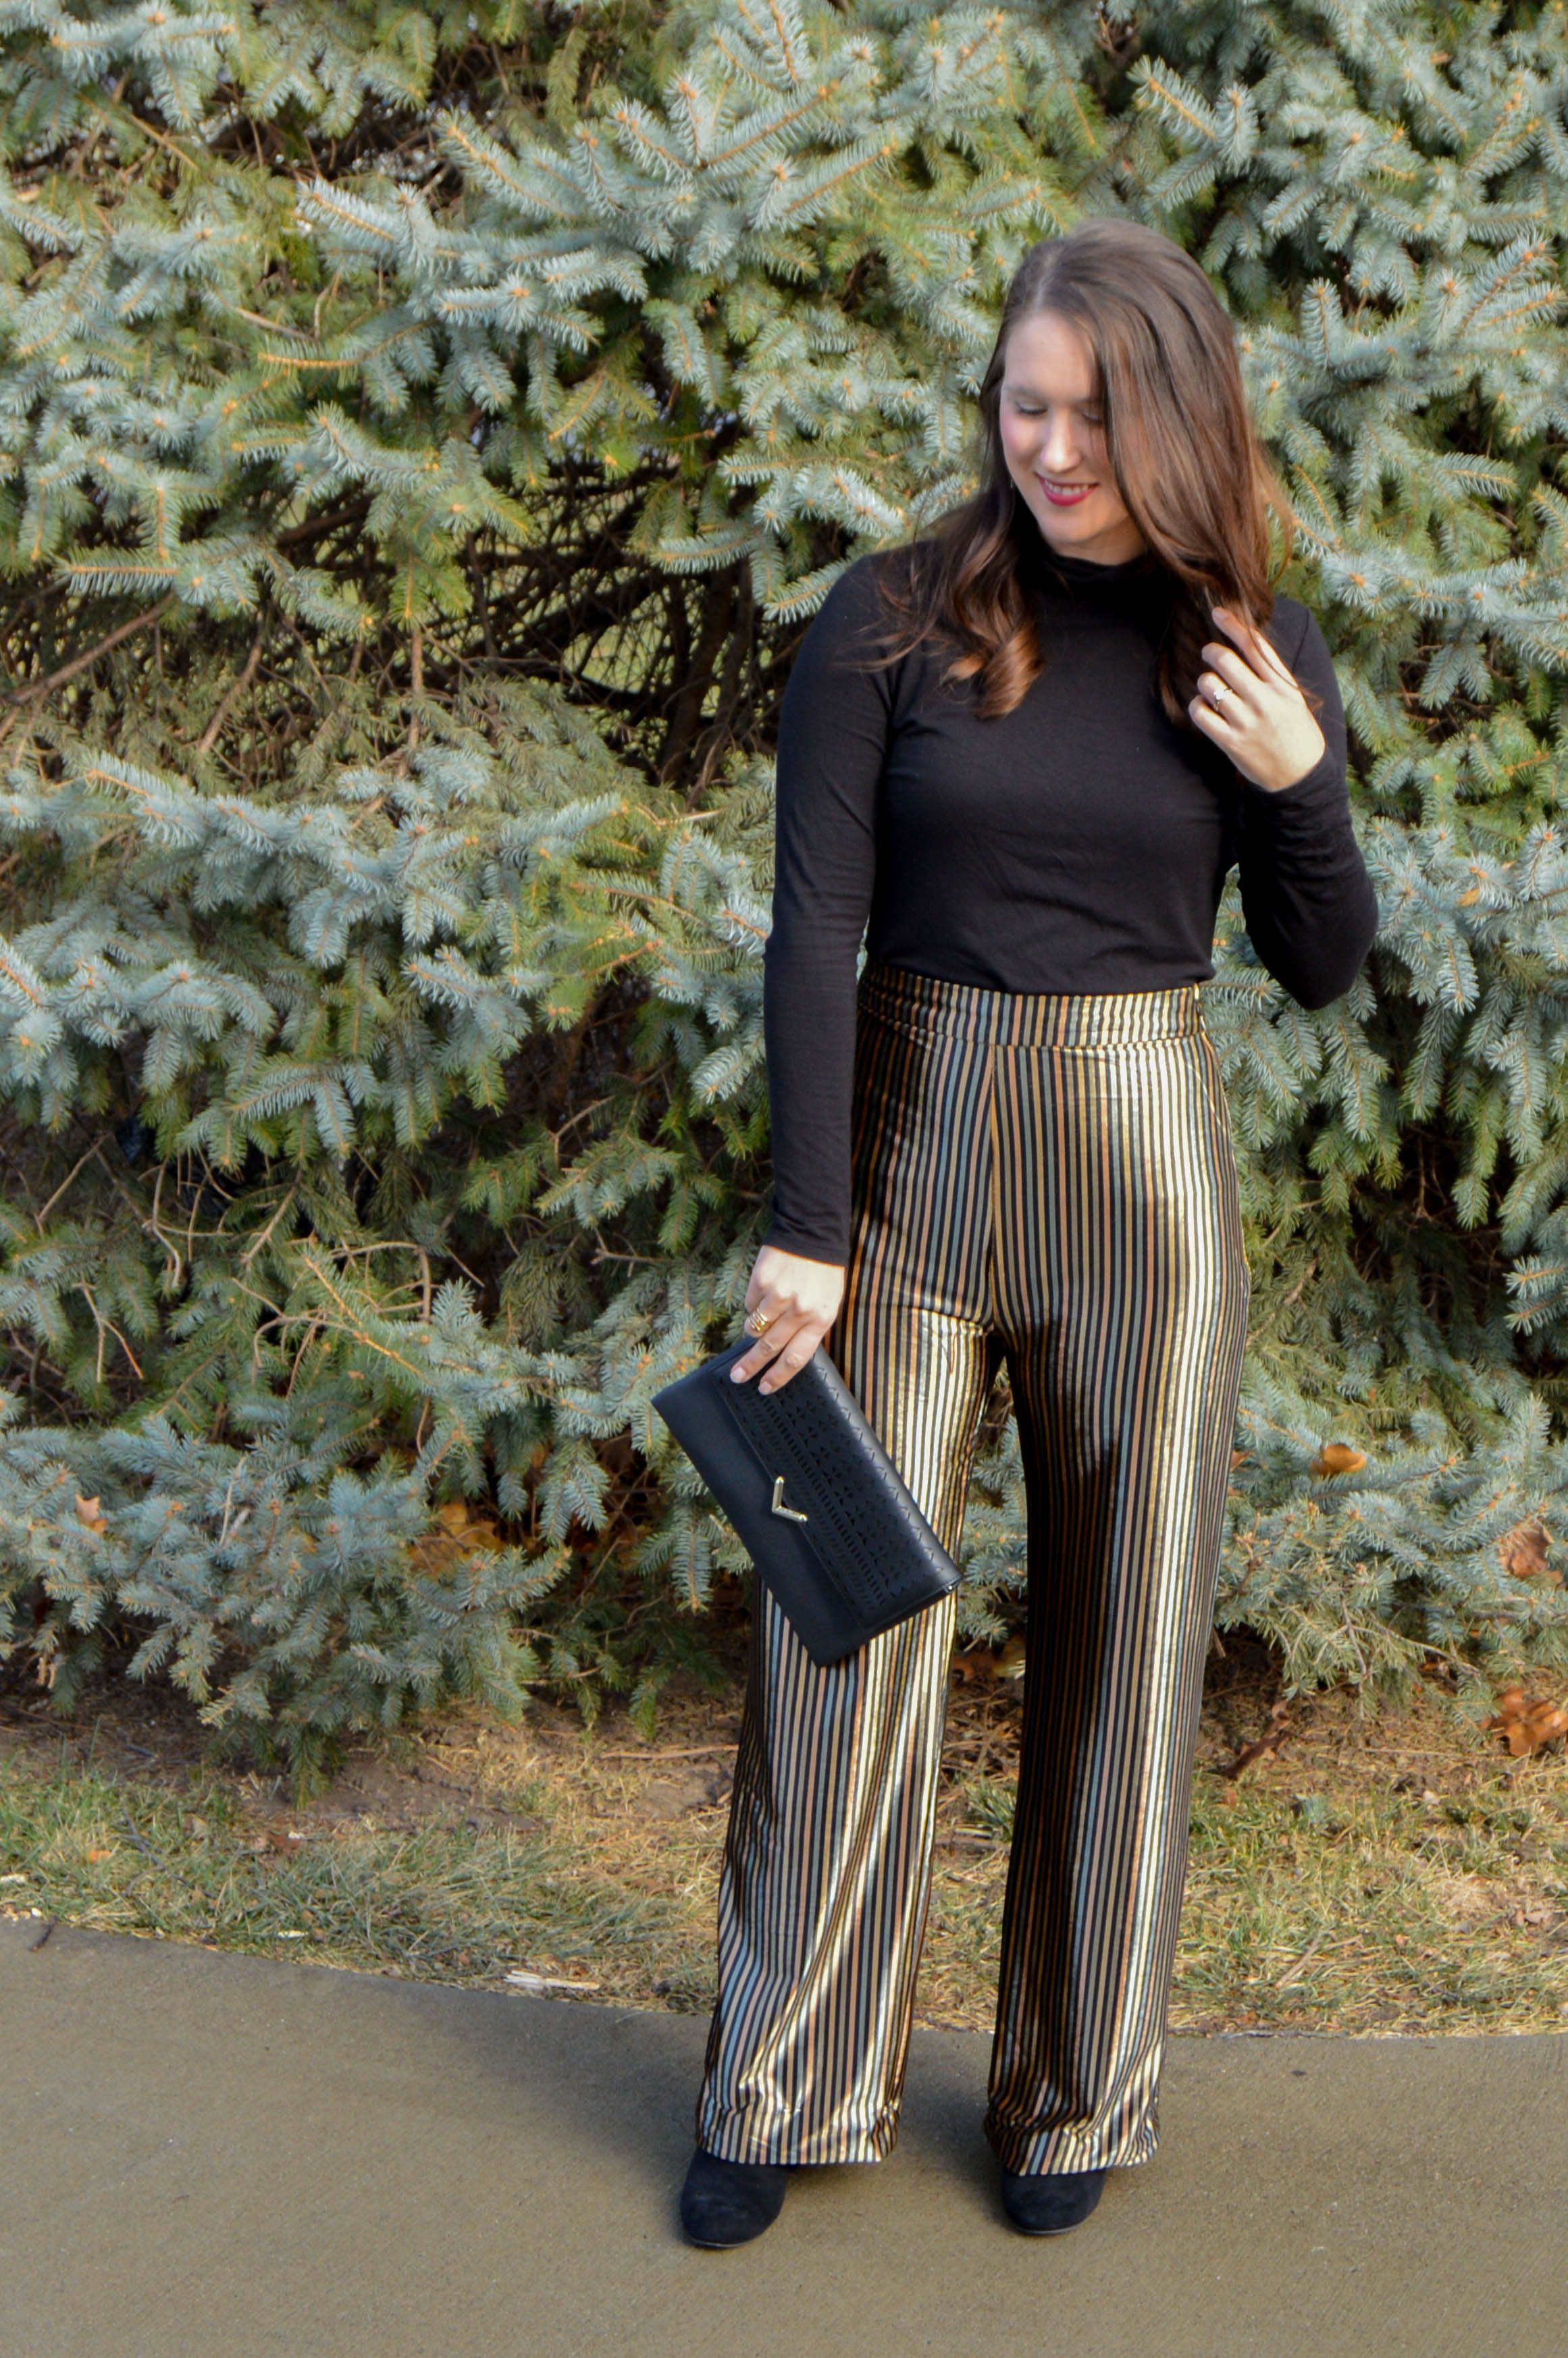 new years eve outfit - velvet pants zara - pajama pant trend